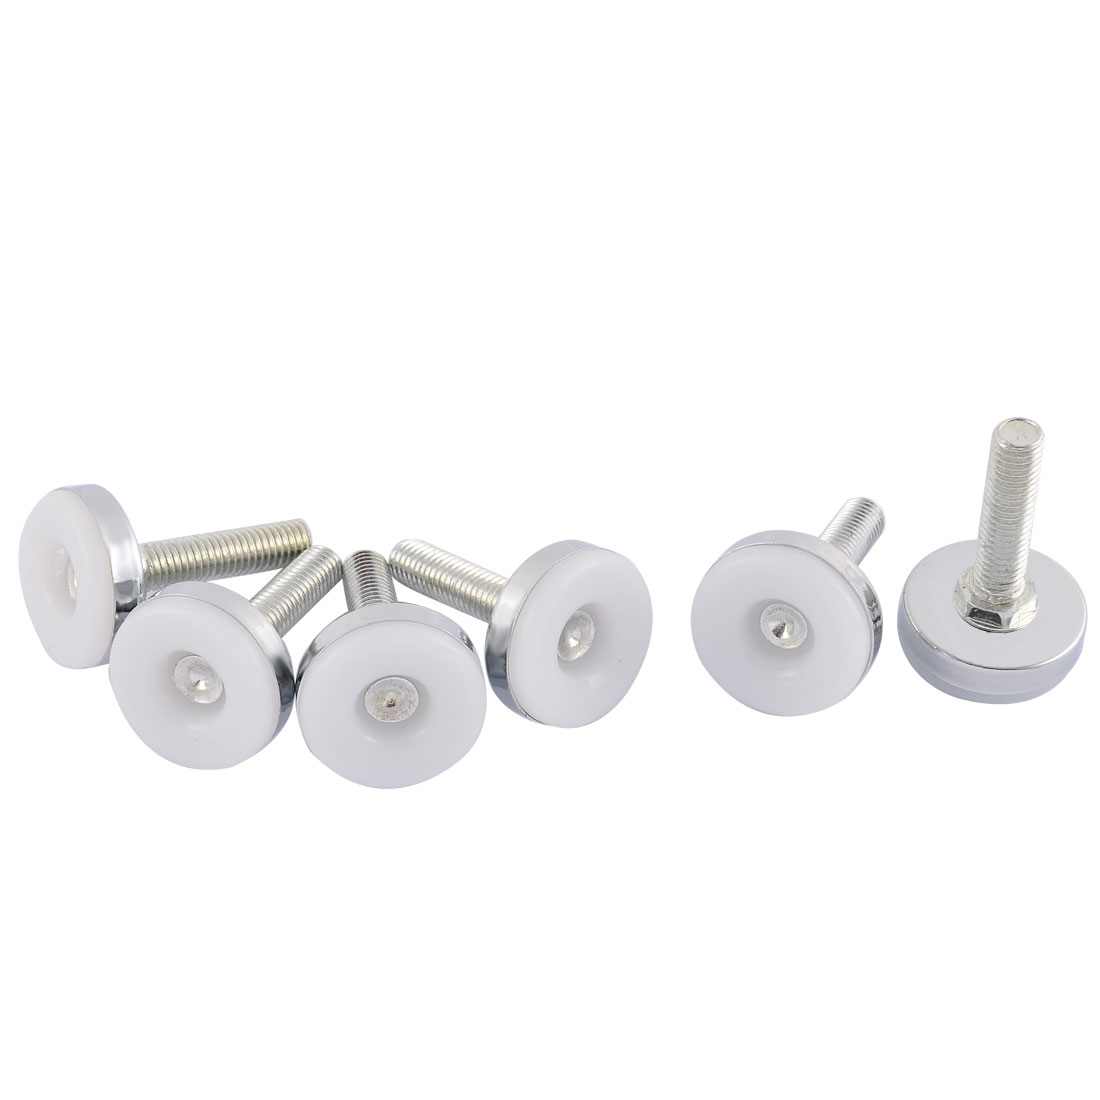 Household Office Adjustable Furniture Glide Leveling Feet 10mm Thread Dia 6 Pcs